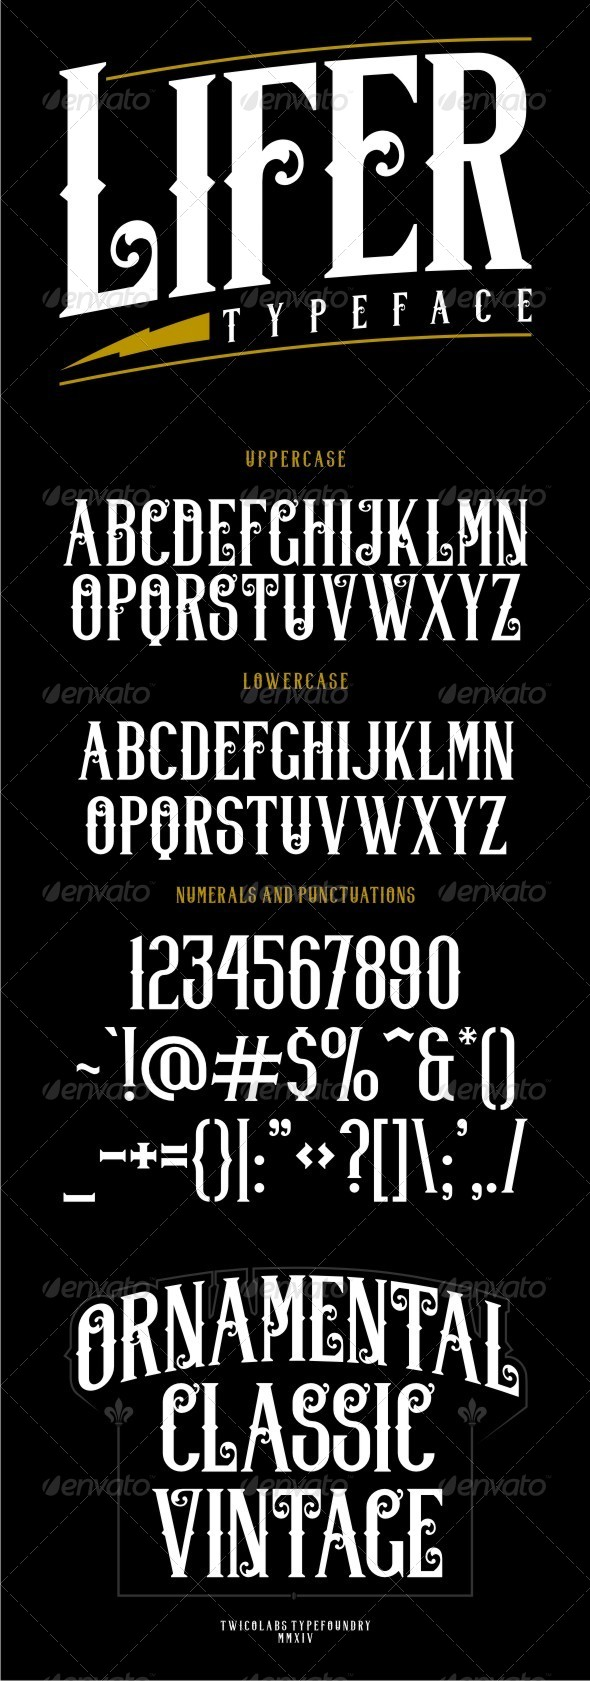 GraphicRiver Lifer Typeface 8364397